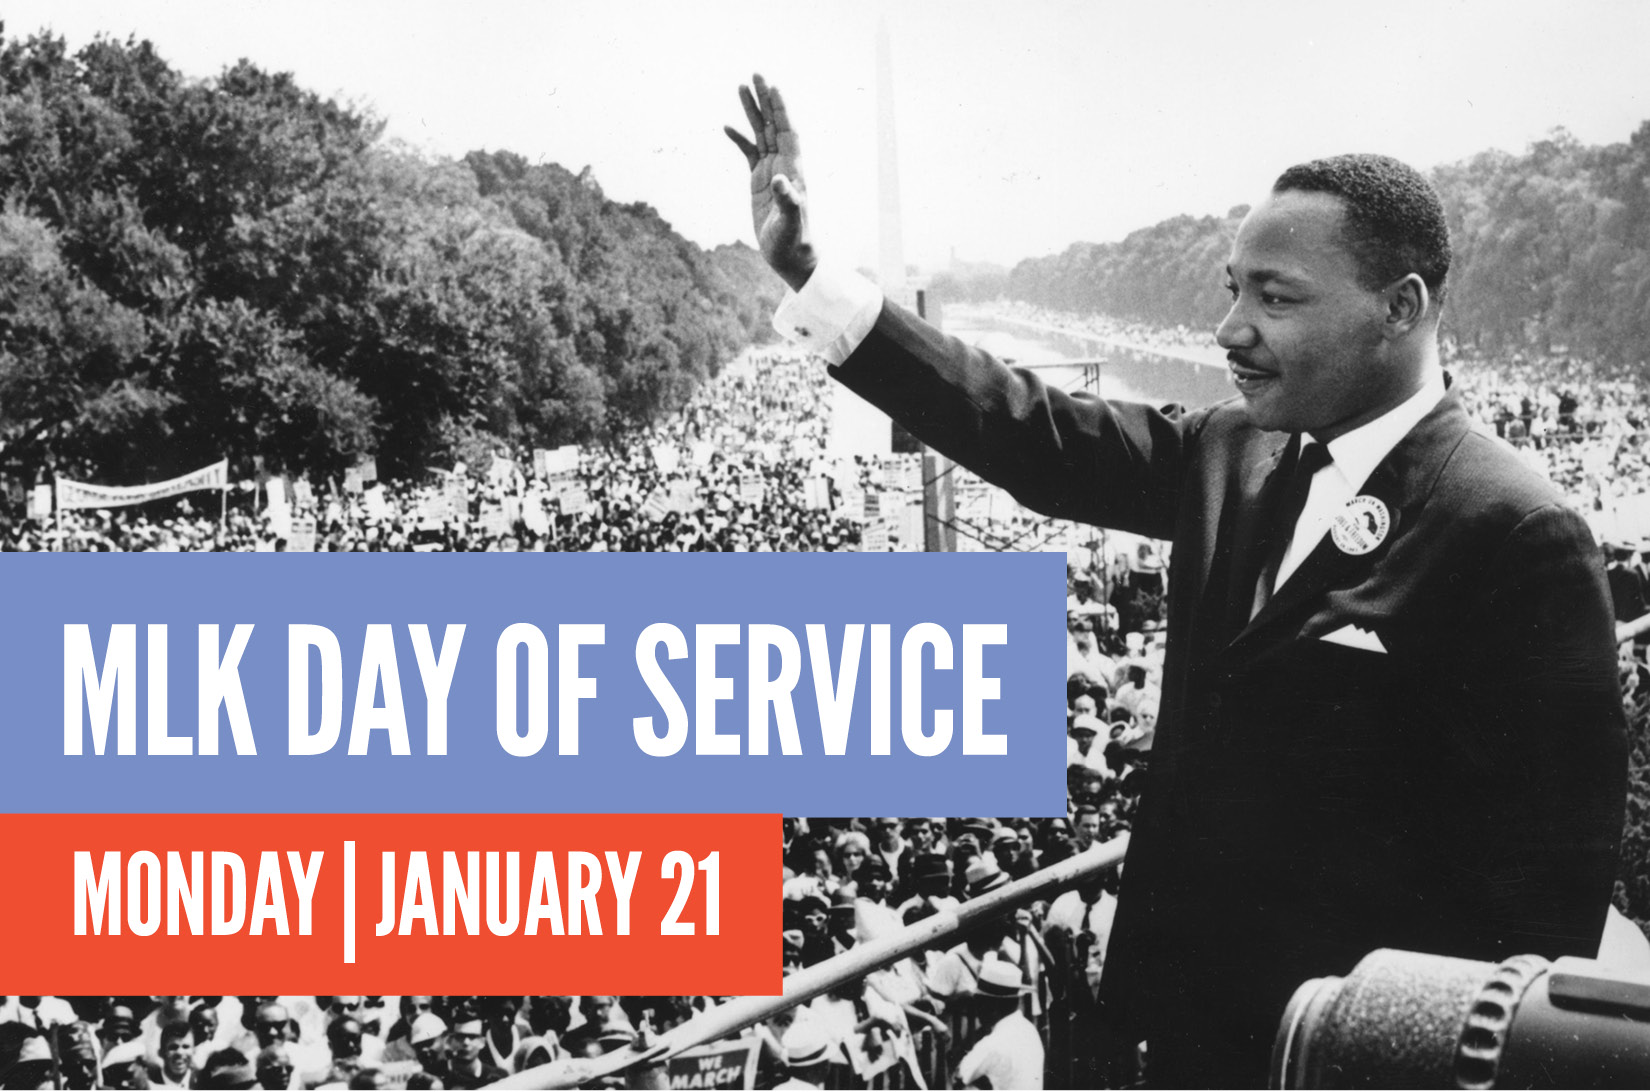 This MLK Day, let's rethink what it really means to serve.